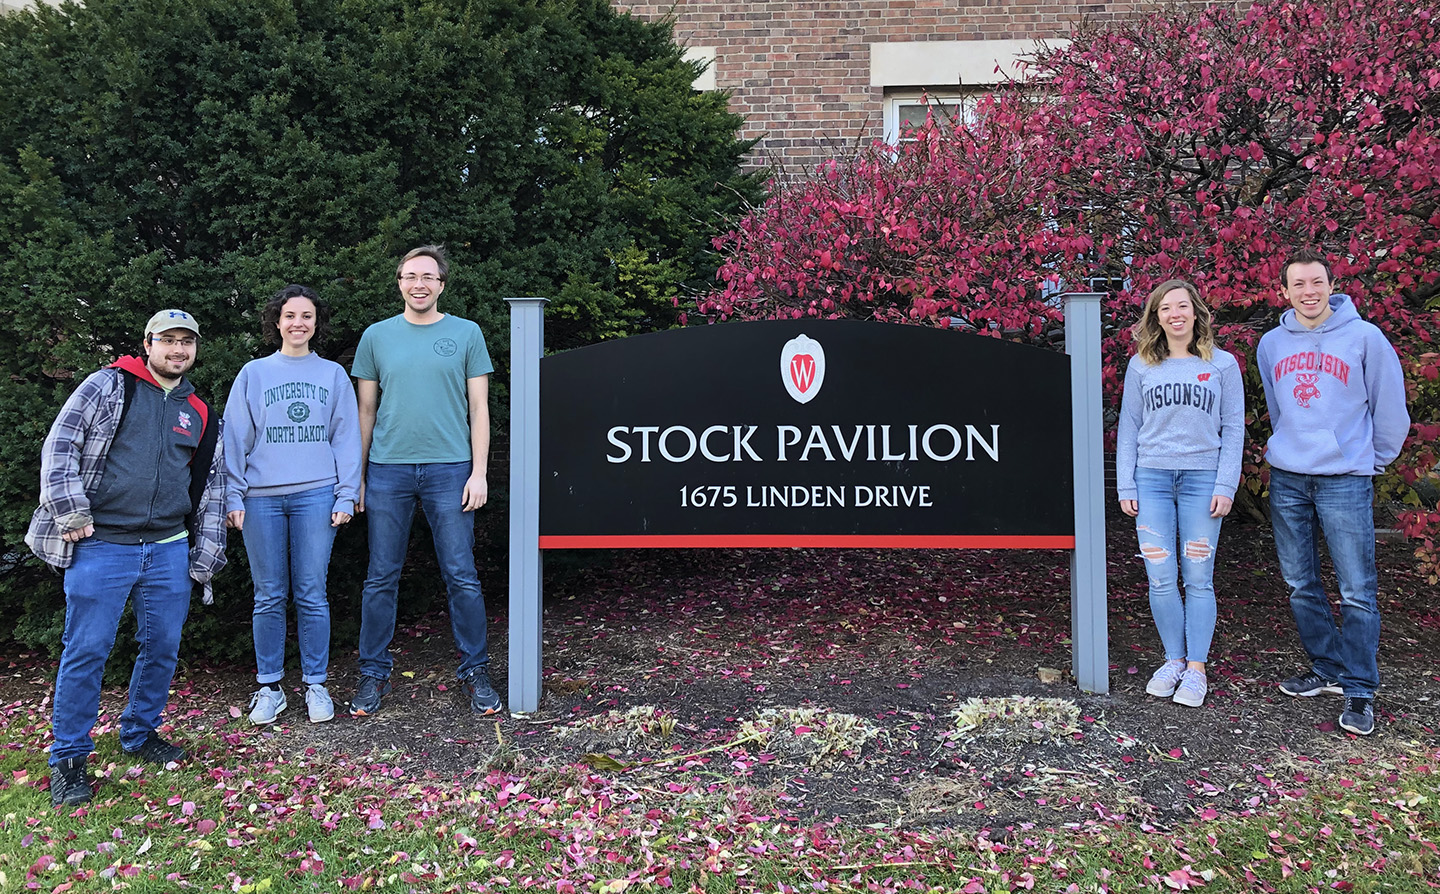 Five students standing next to the UW Stock Pavilion sign.